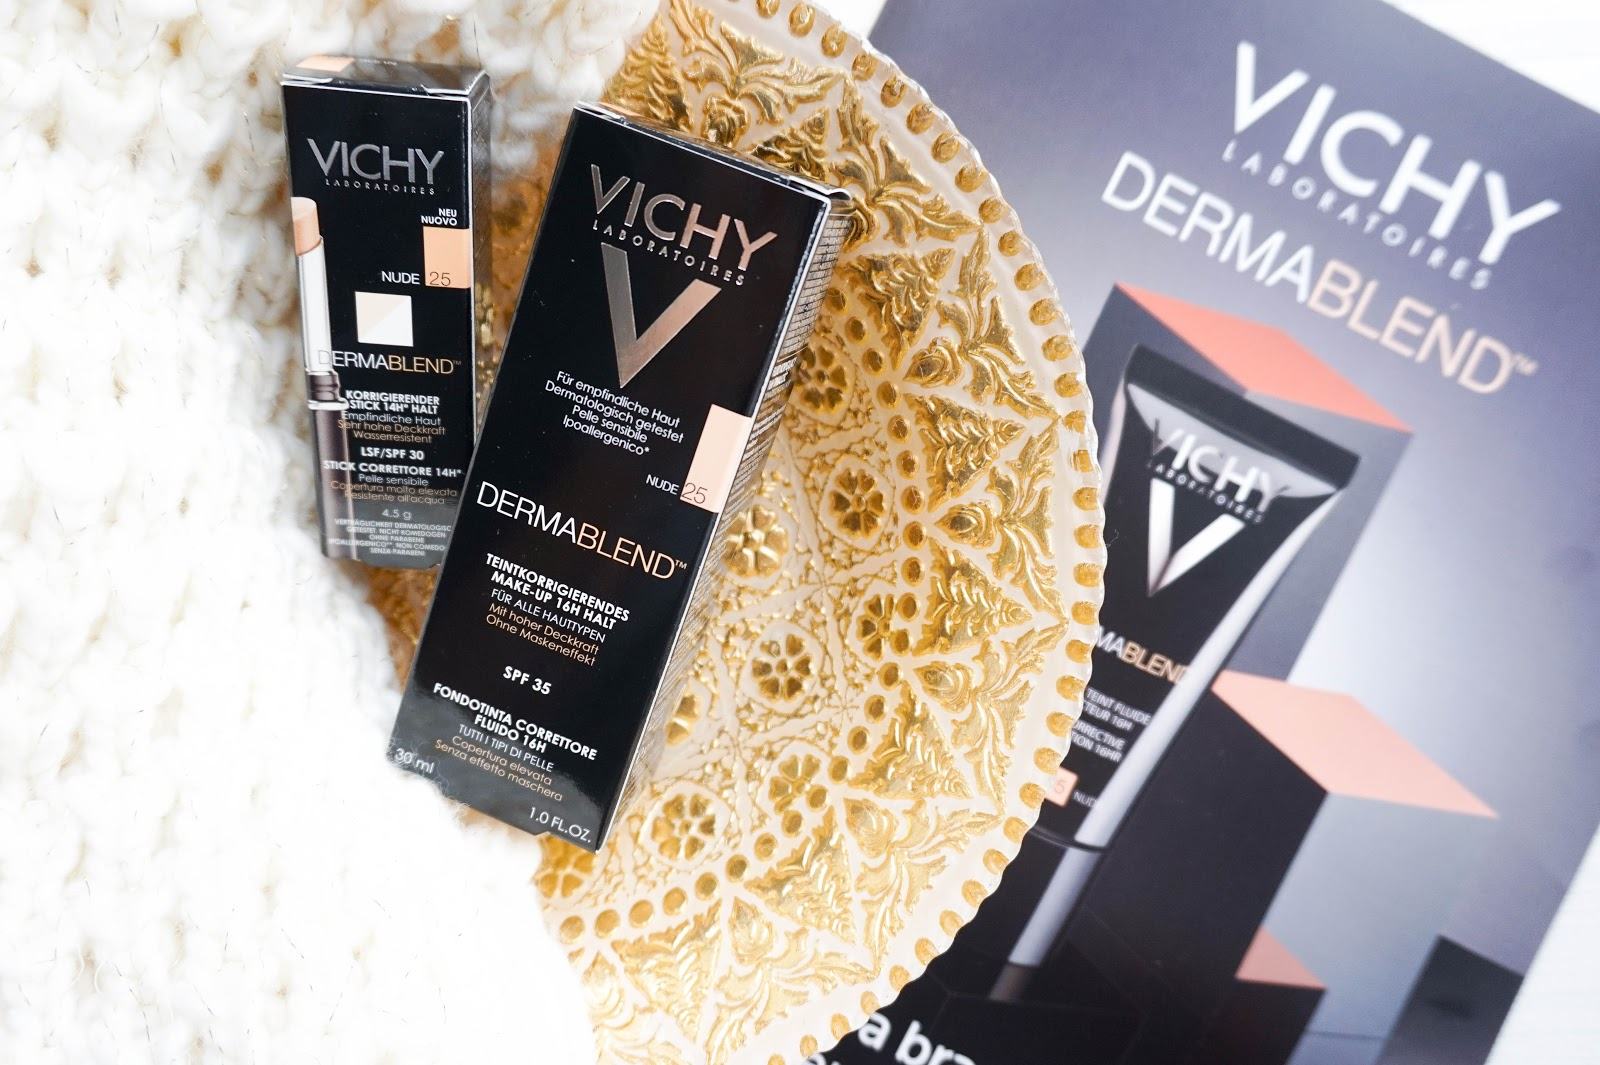 Flawless Skin with Vichy Dermablend